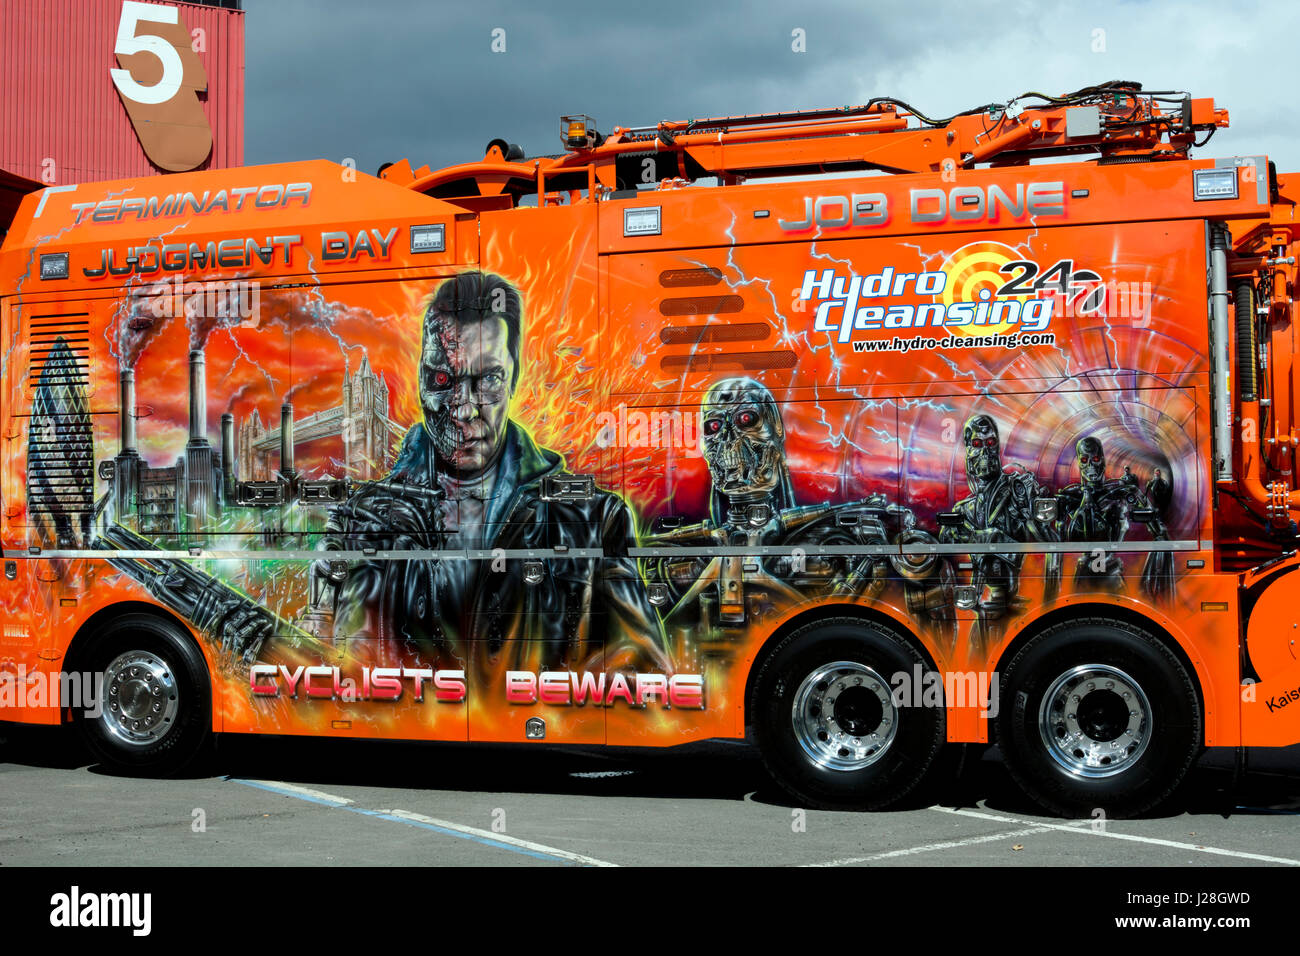 Terminator Judgment Day artwork on a Kaiser Whale tanker vehicle at the Commercial Vehicle Show, NEC, Birmingham, - Stock Image